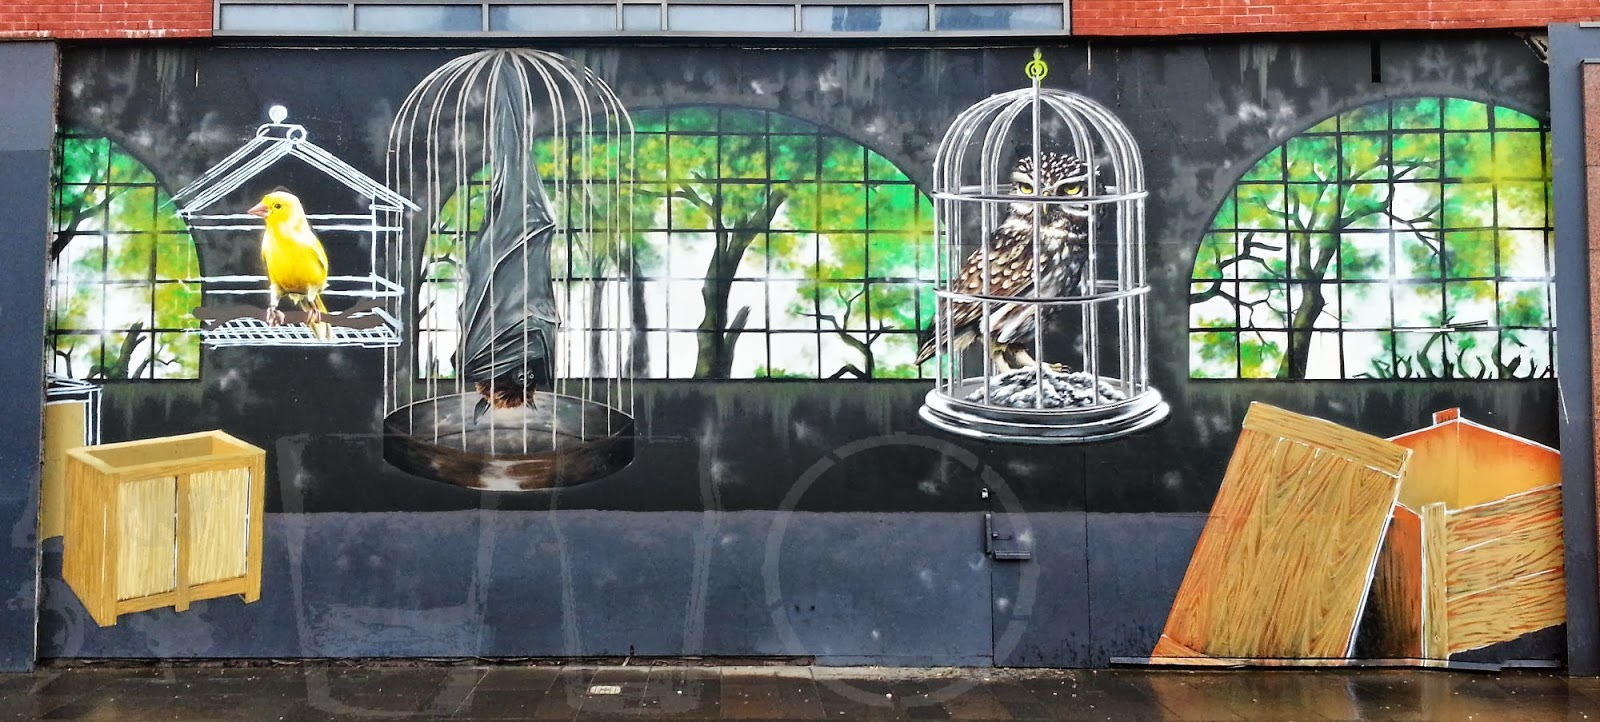 Howard Street Mural, Glasgow